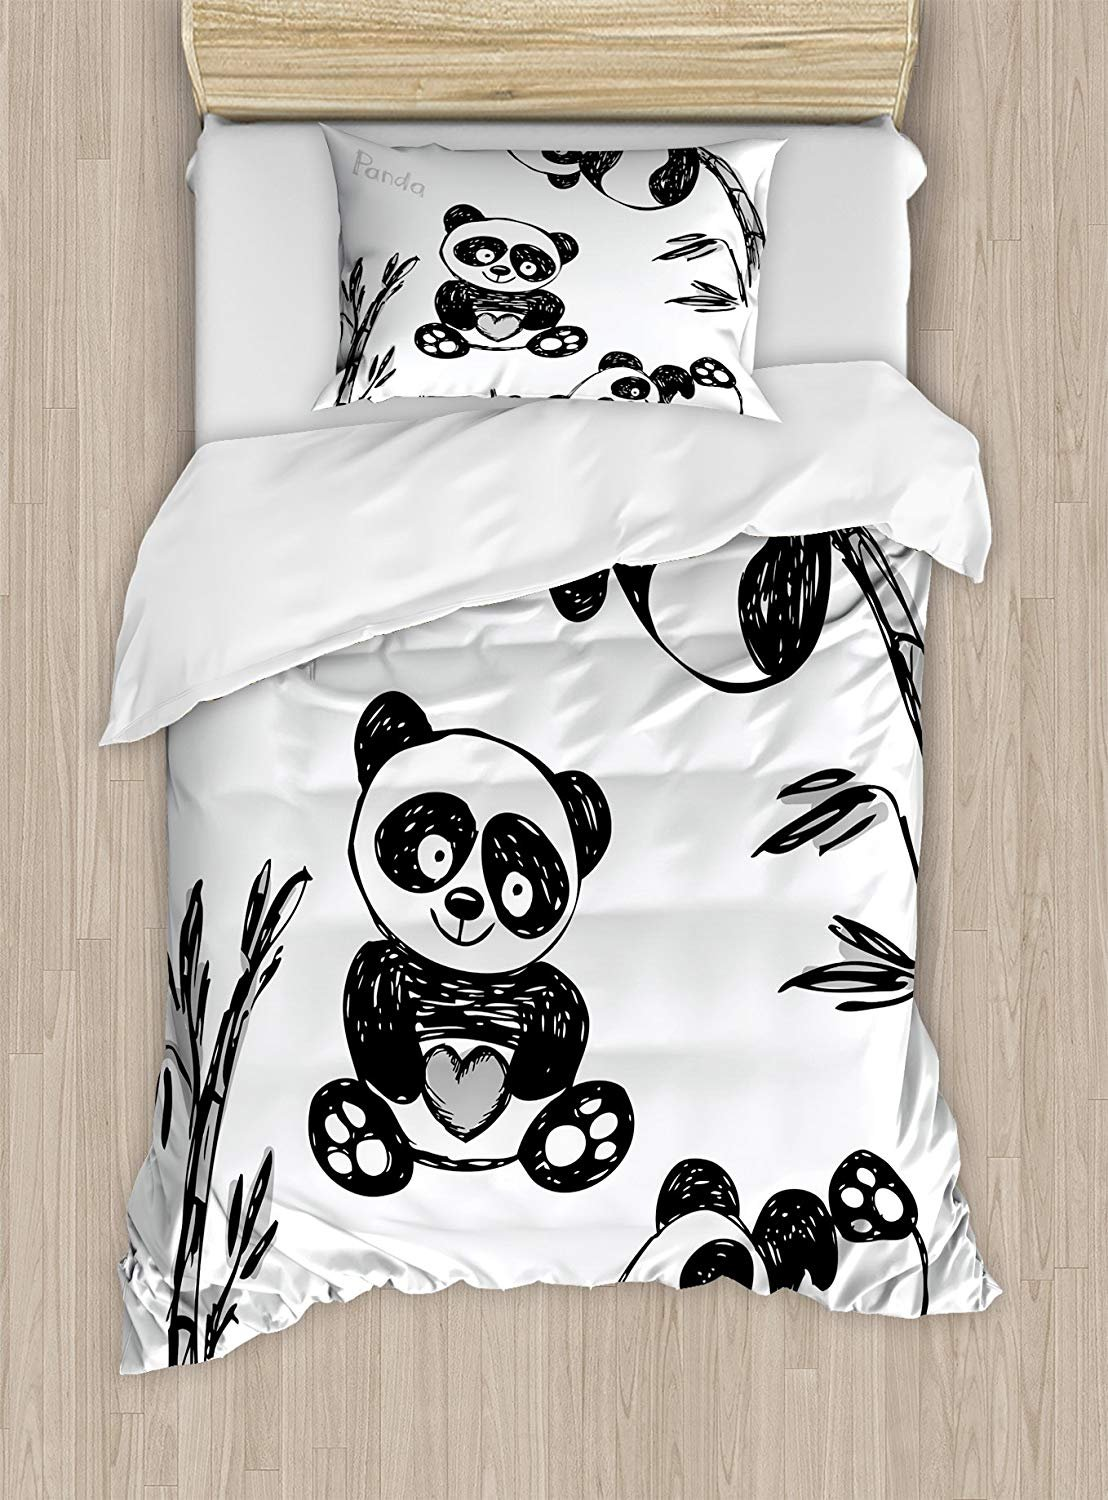 Arrow Duvet Cover Set,Cheerful Panda Different Poses with Bamboo Branch Children Painting Art Print,Cosy House Collection 4 Piece Bedding Sets